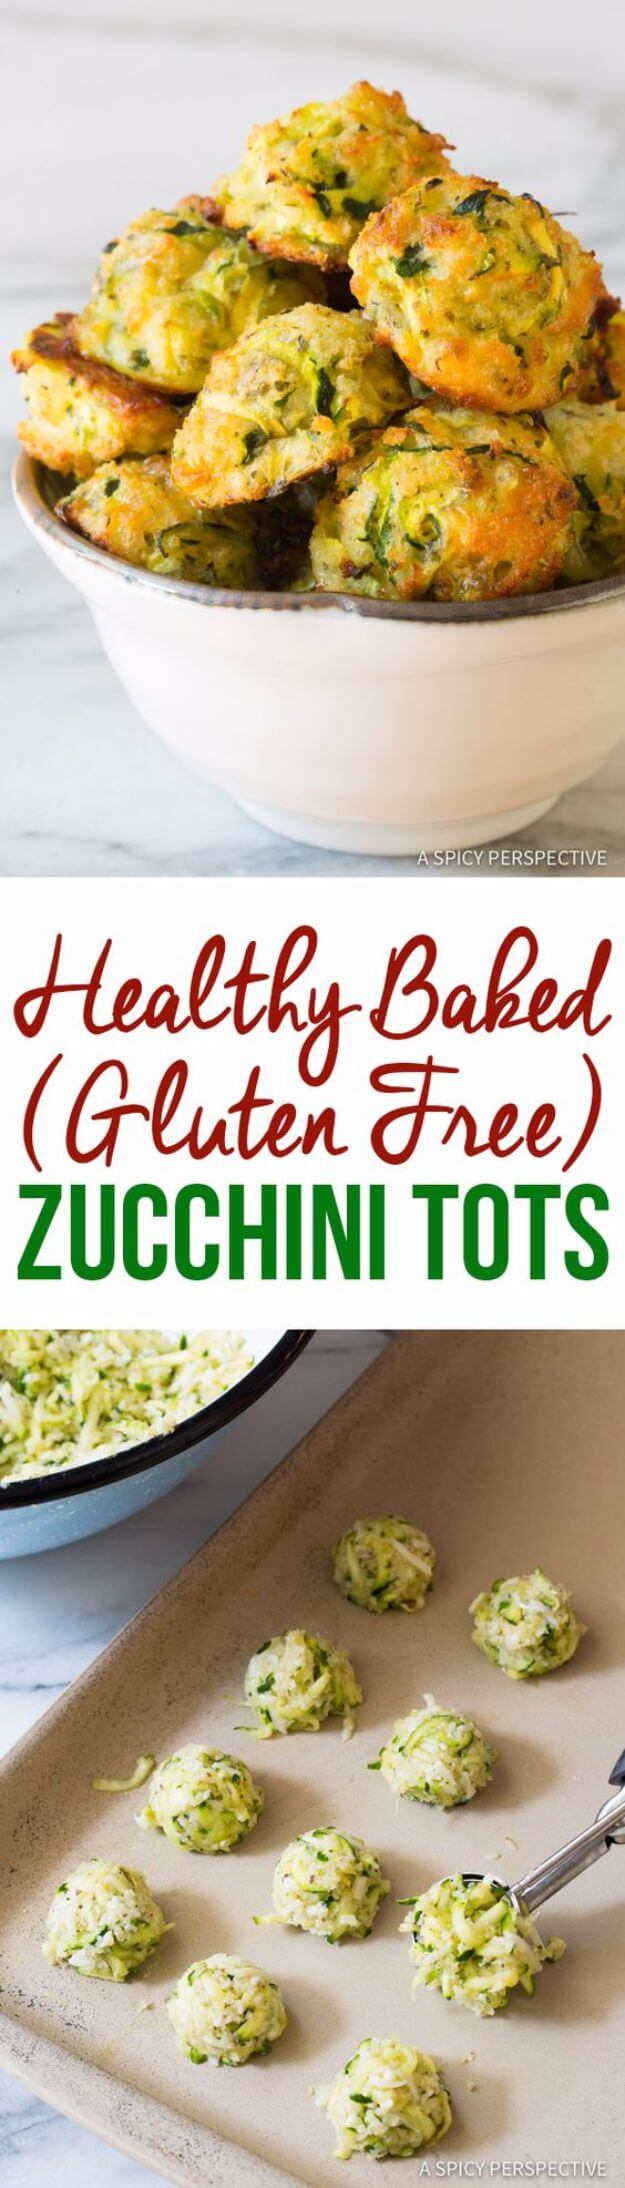 Healthy Baked Zucchini Tots